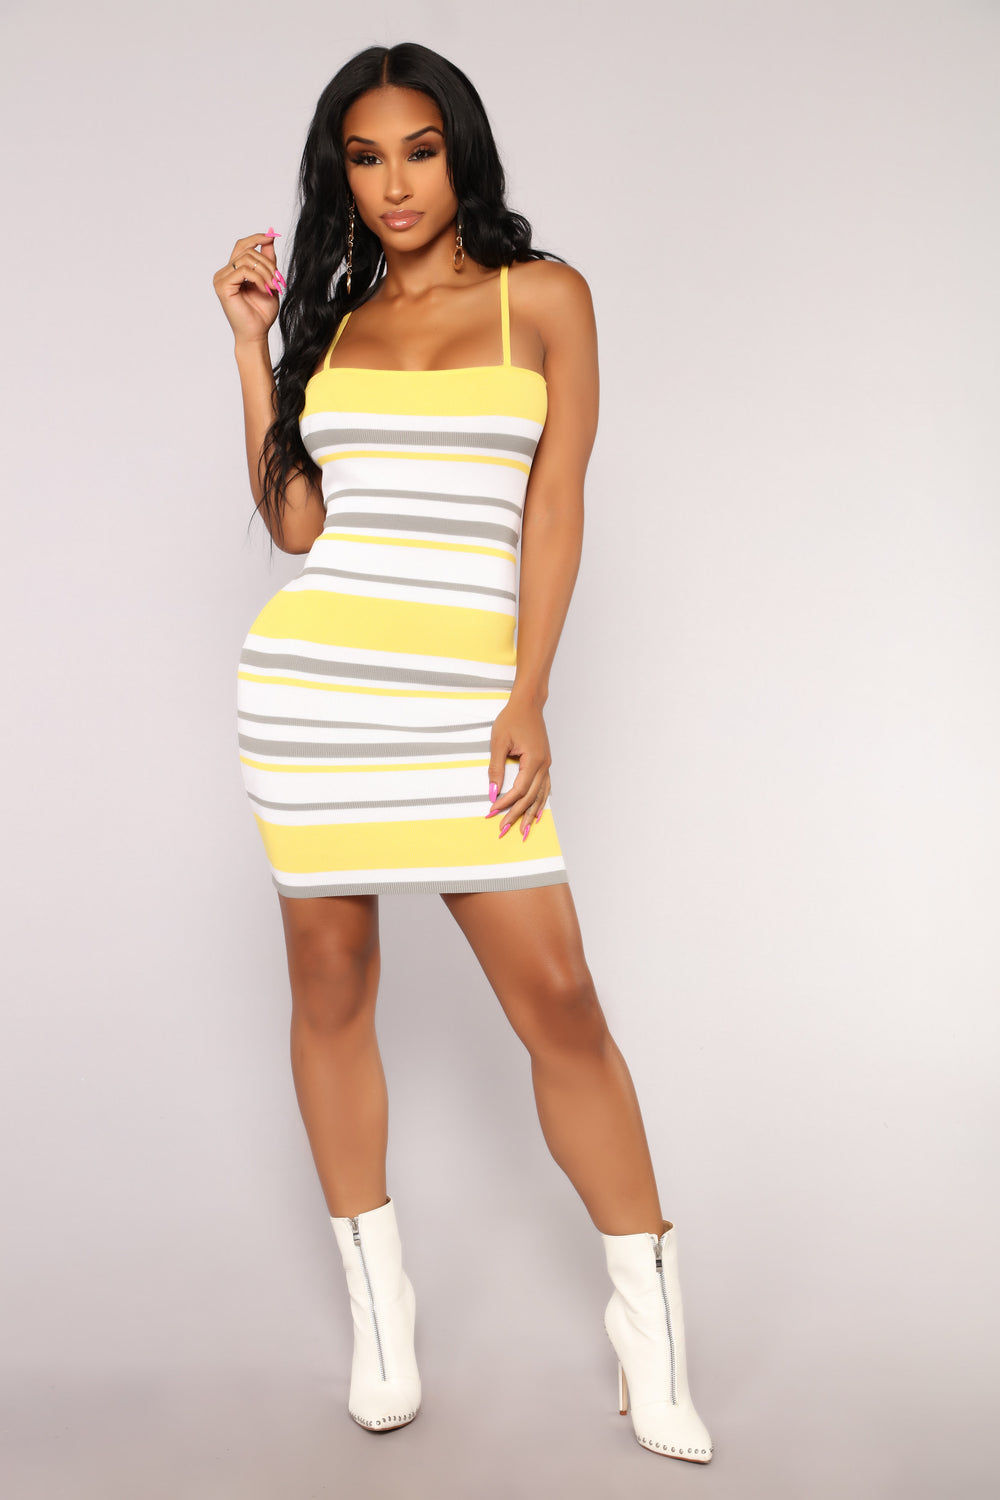 Keep Your Promises Knit Dress - Yellow